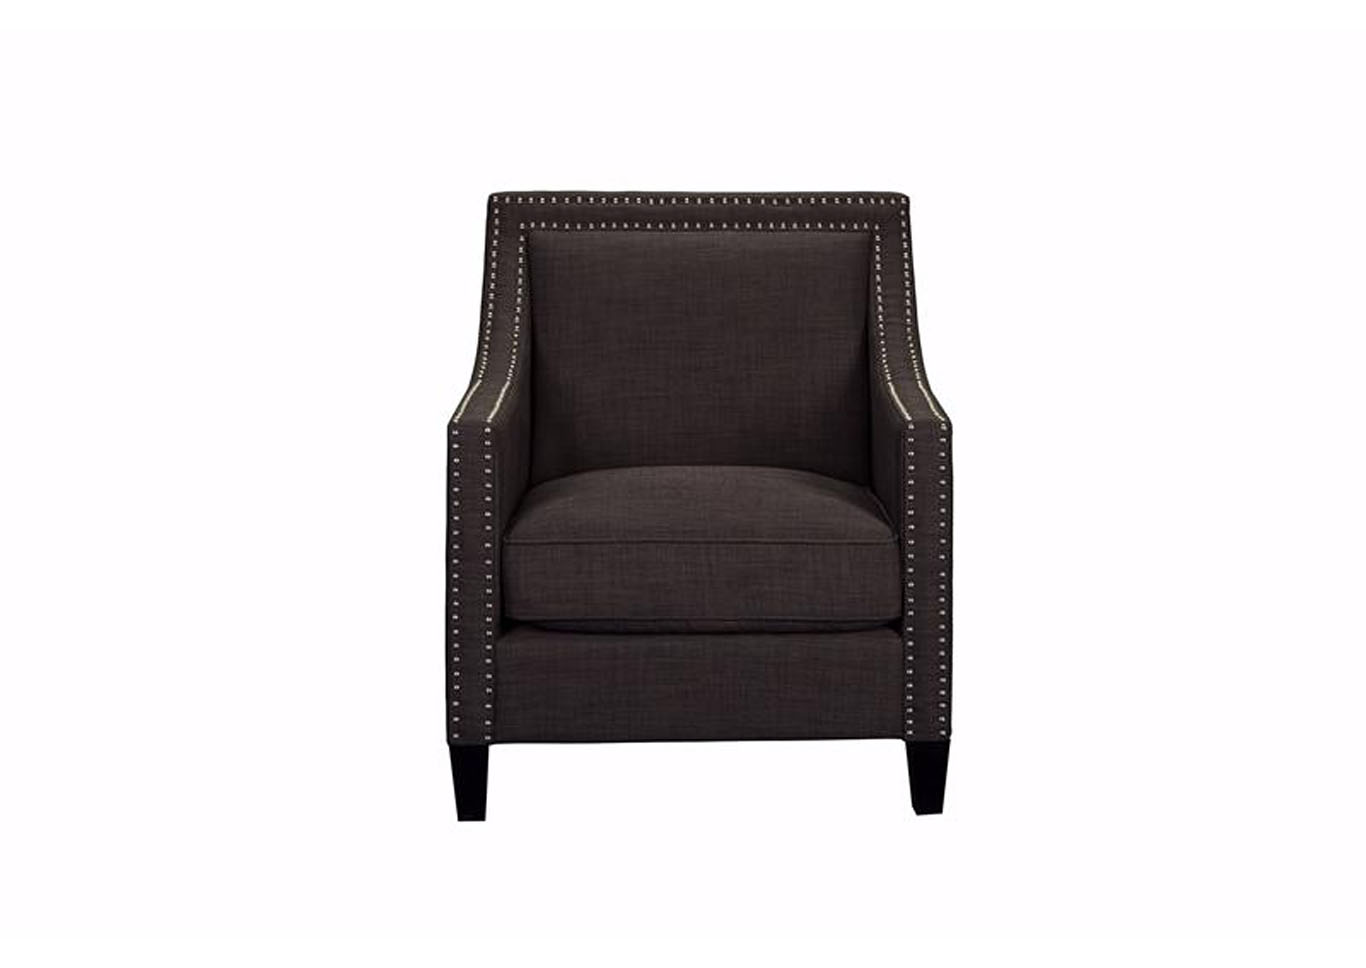 Erica Accent Chair - Heirloom Charcoal,Instore